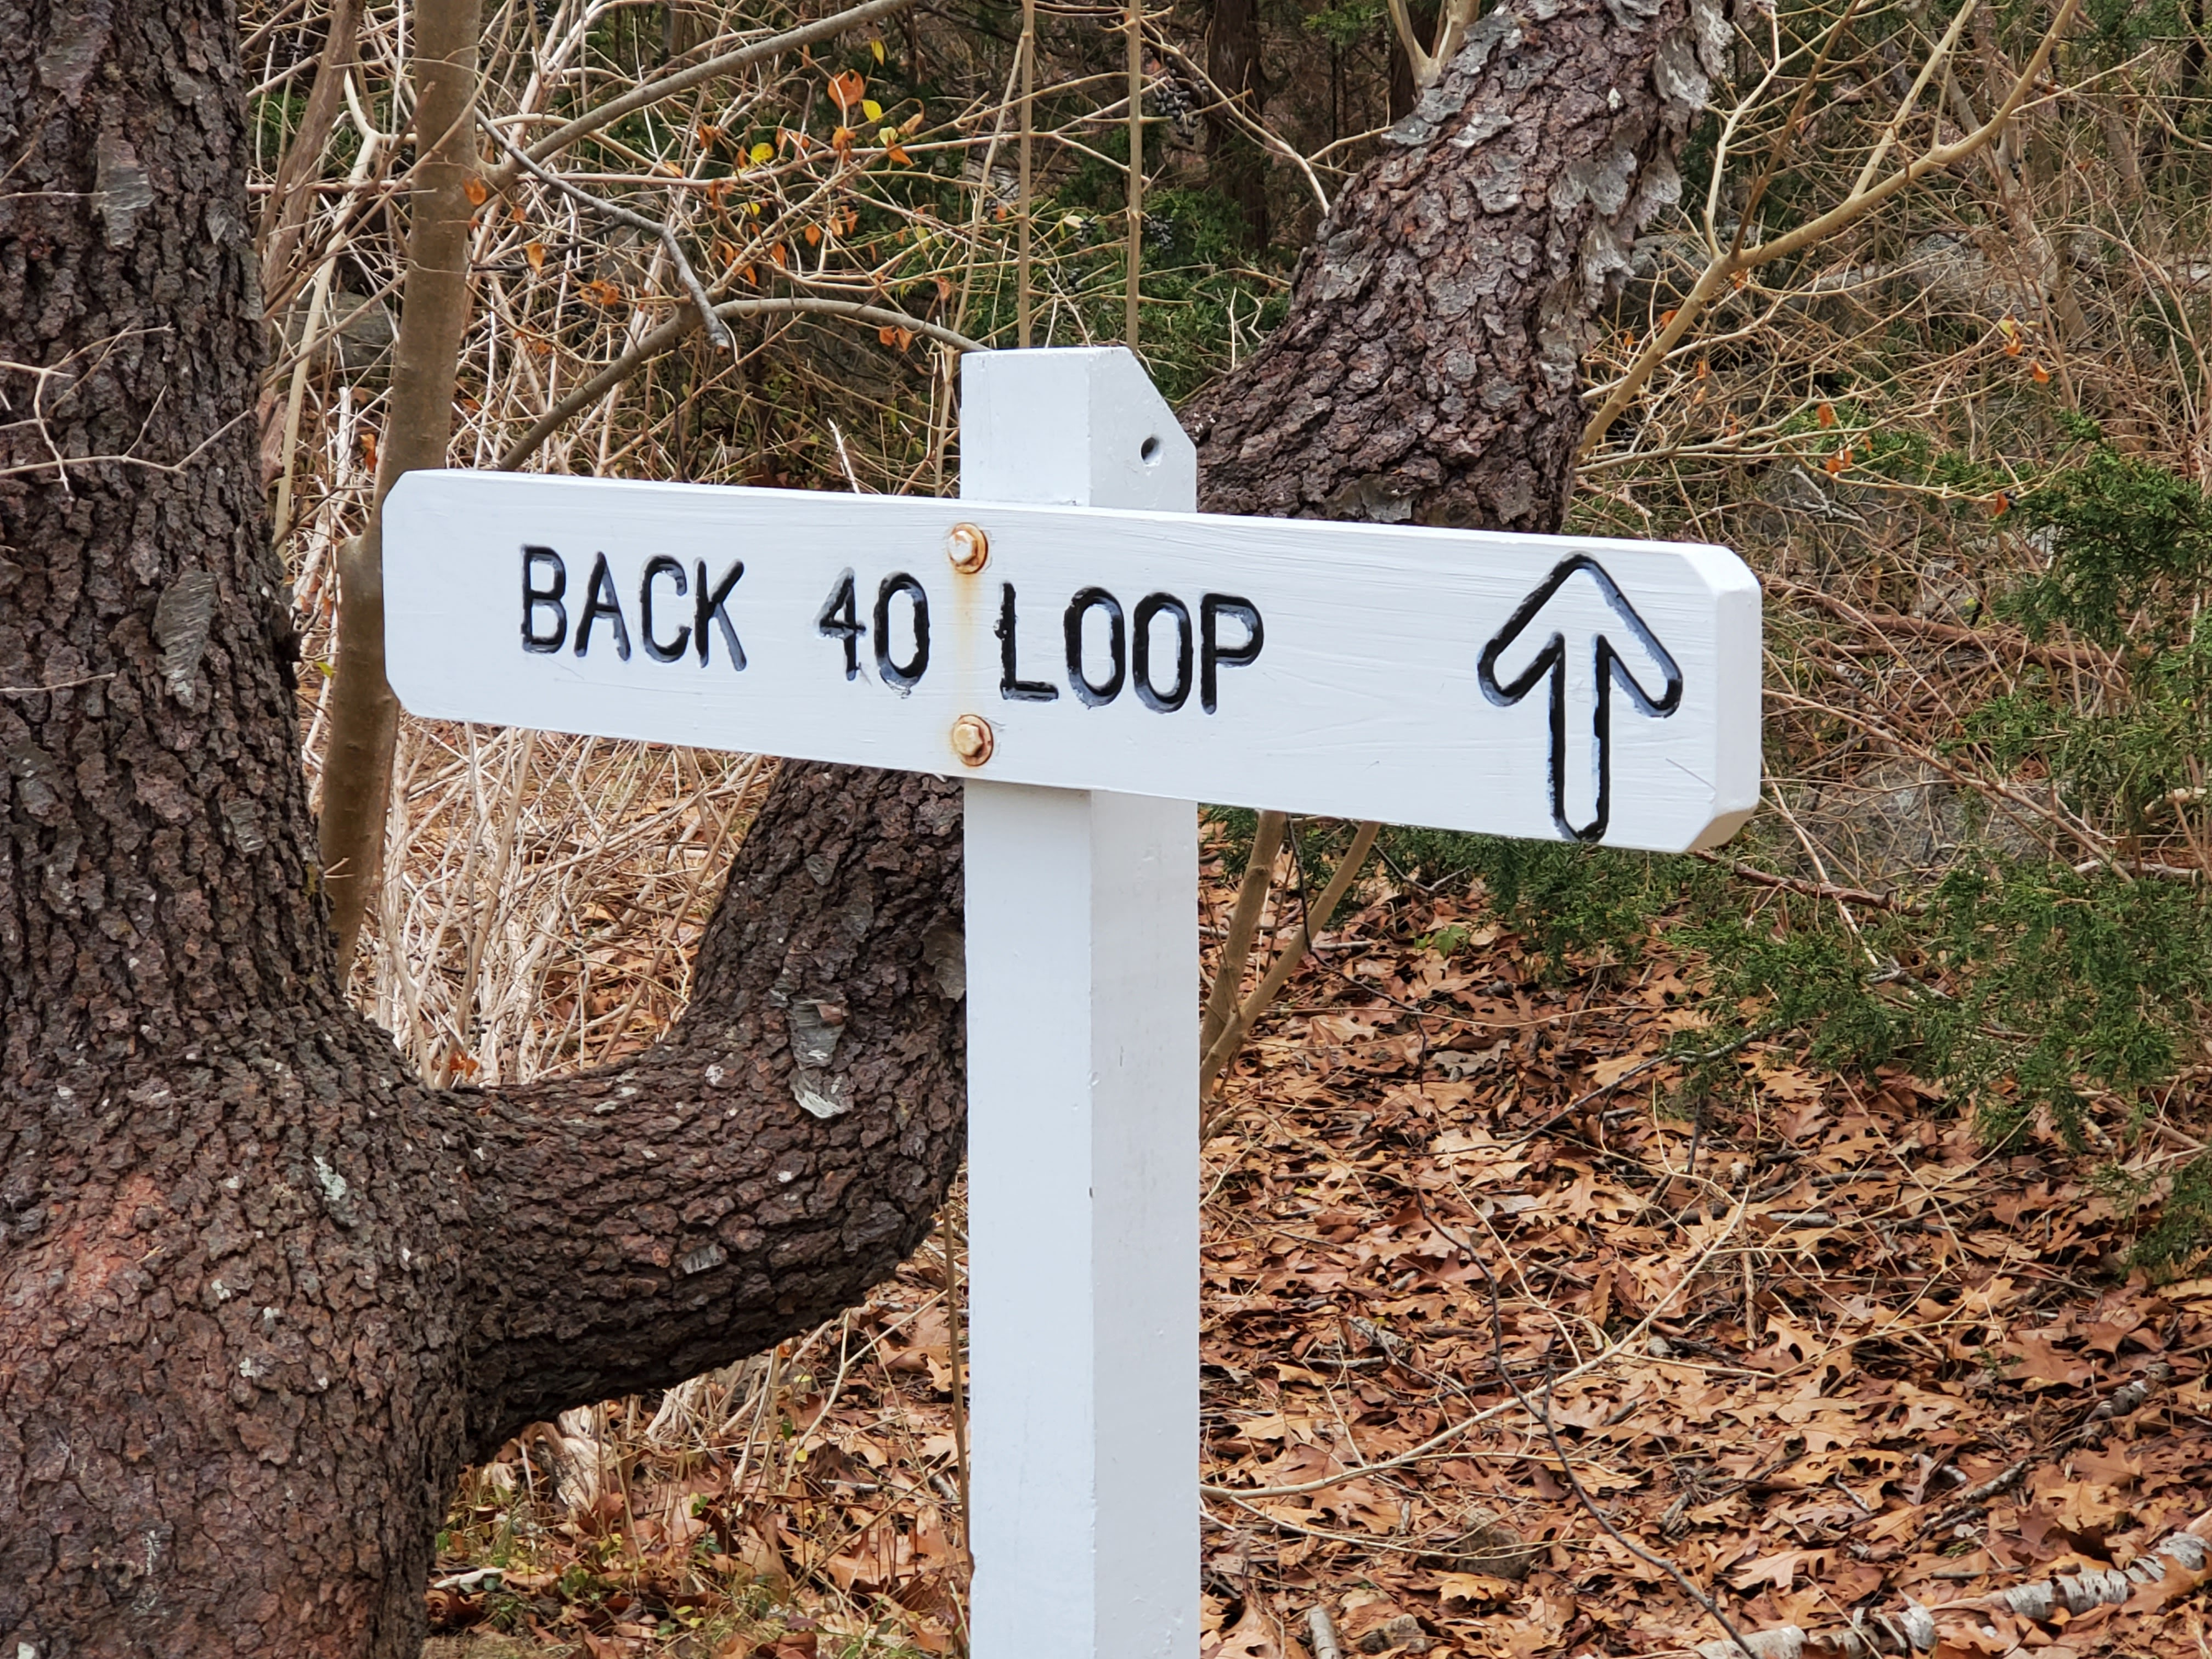 Arrow sign pointing to Back 40 Loop